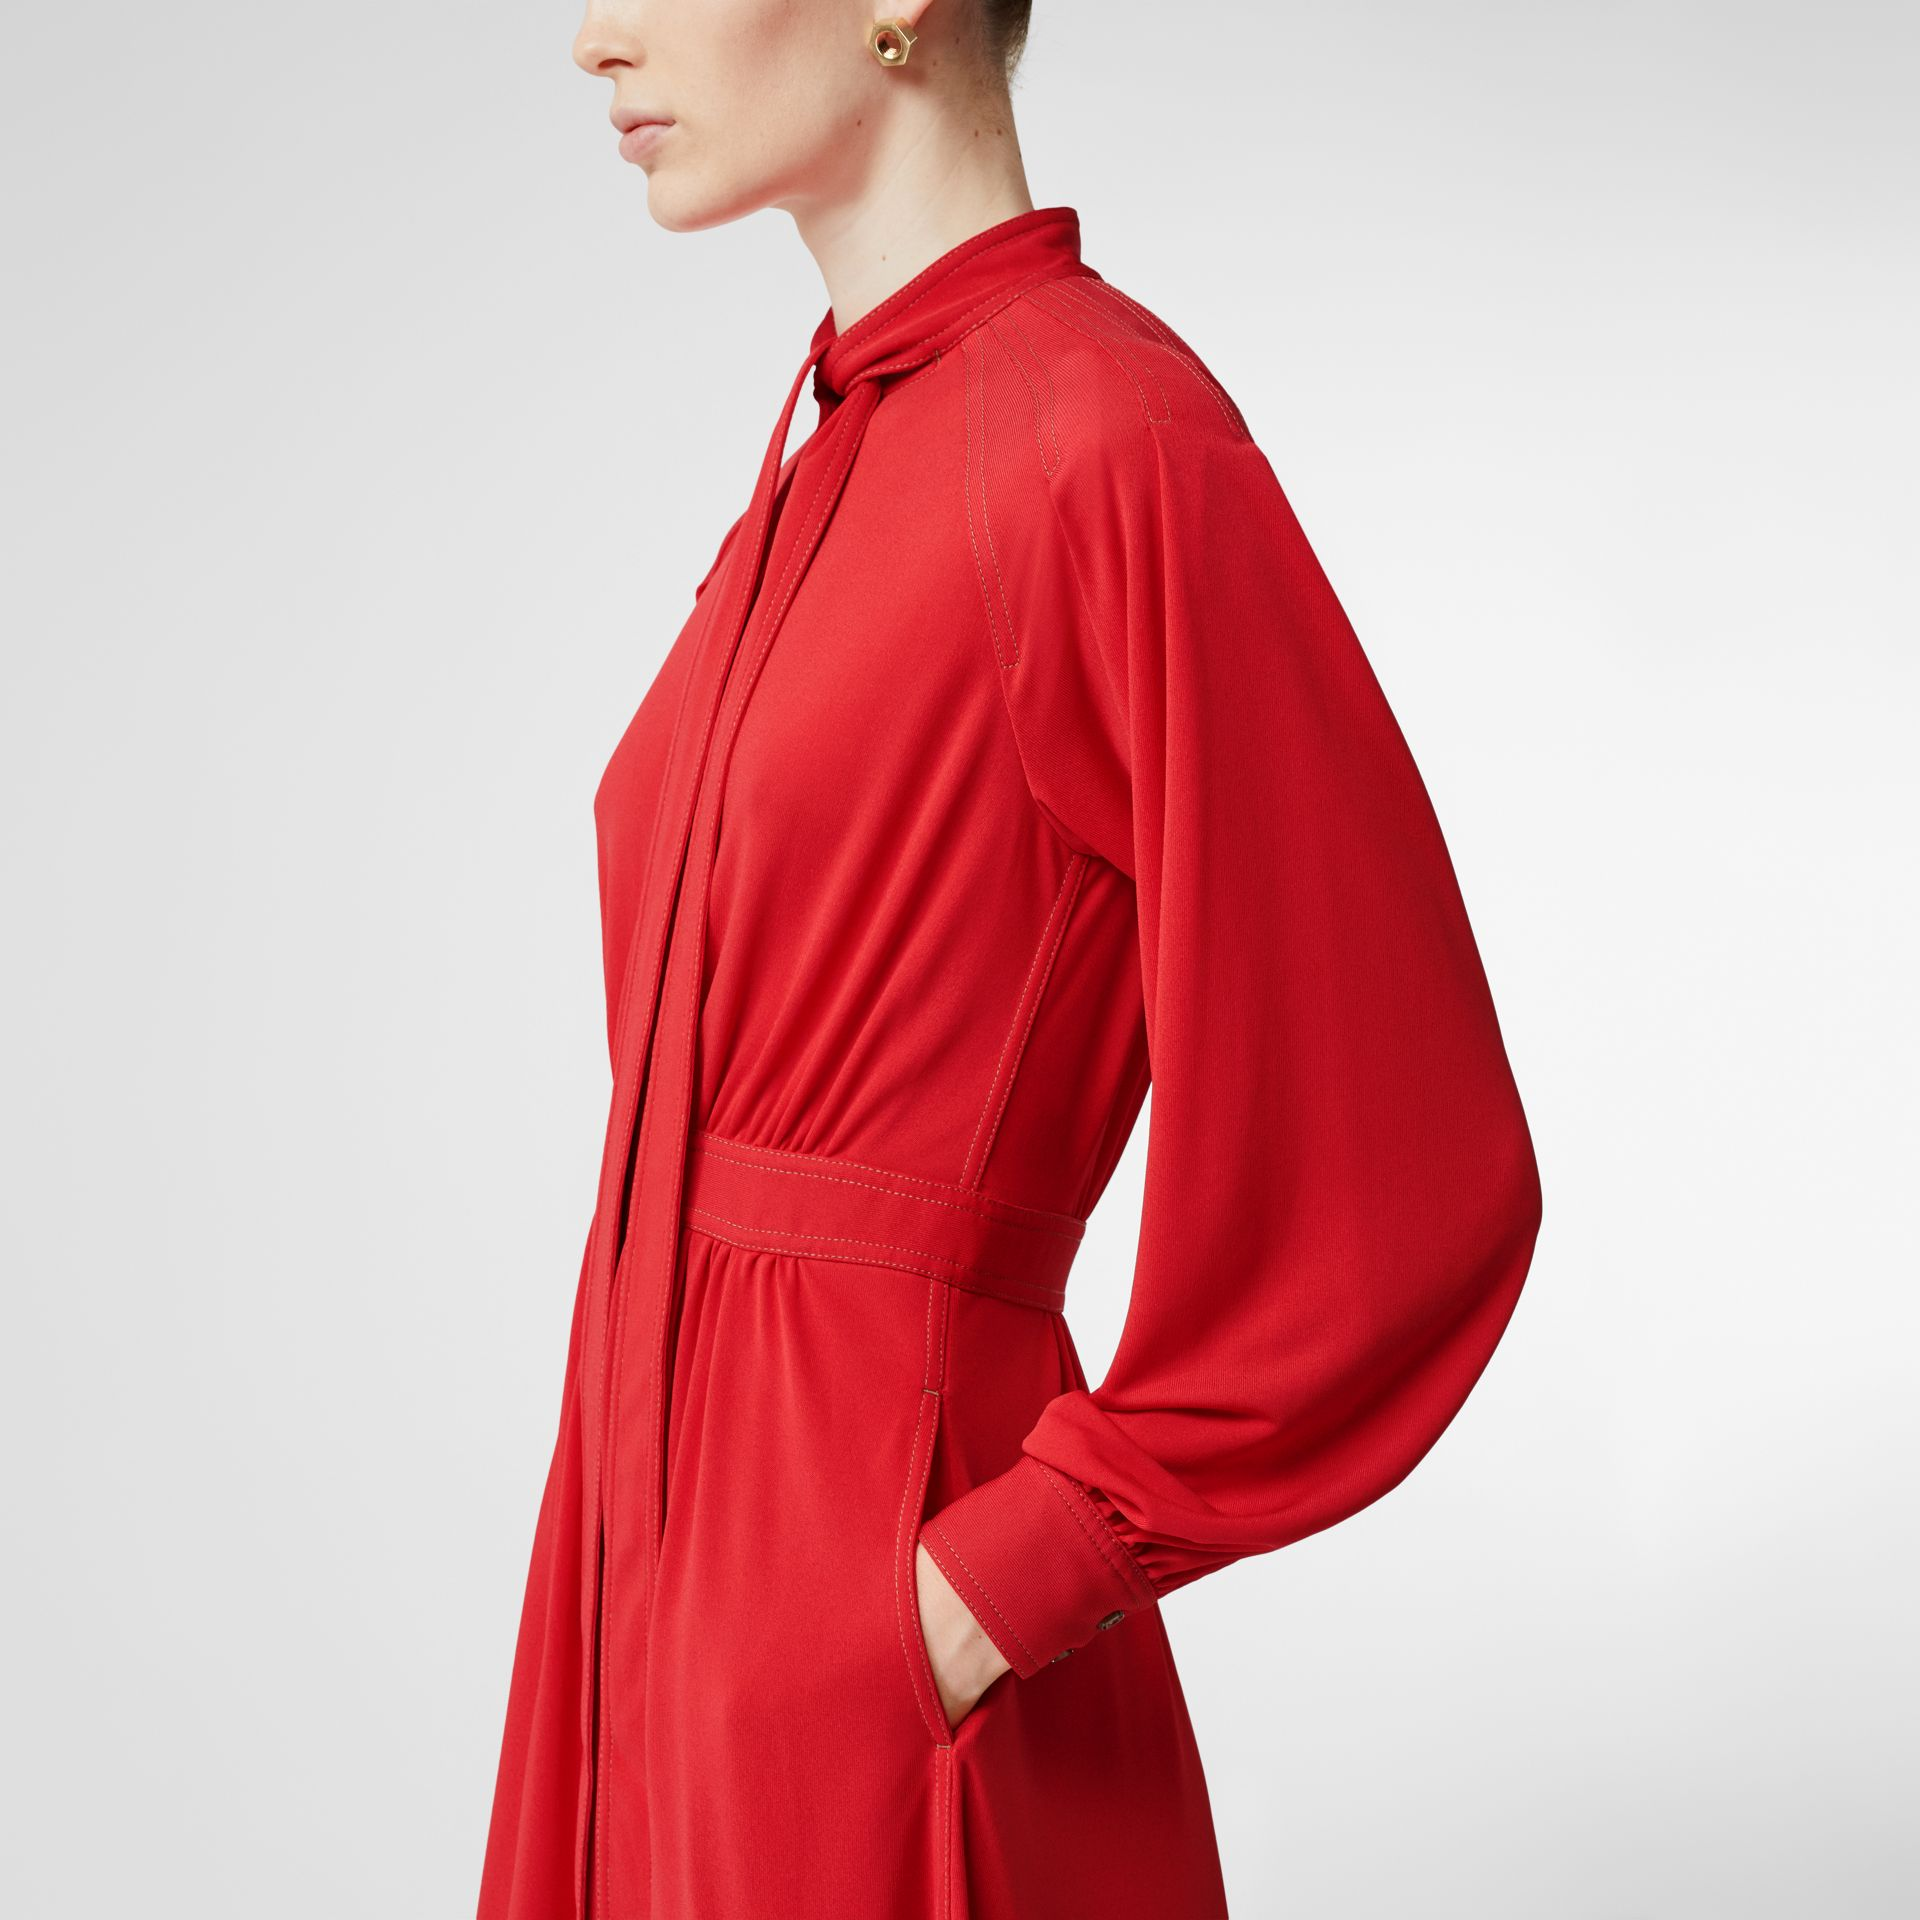 Topstitch Detail Jersey Tie-neck Dress in Bright Red - Women | Burberry - gallery image 1